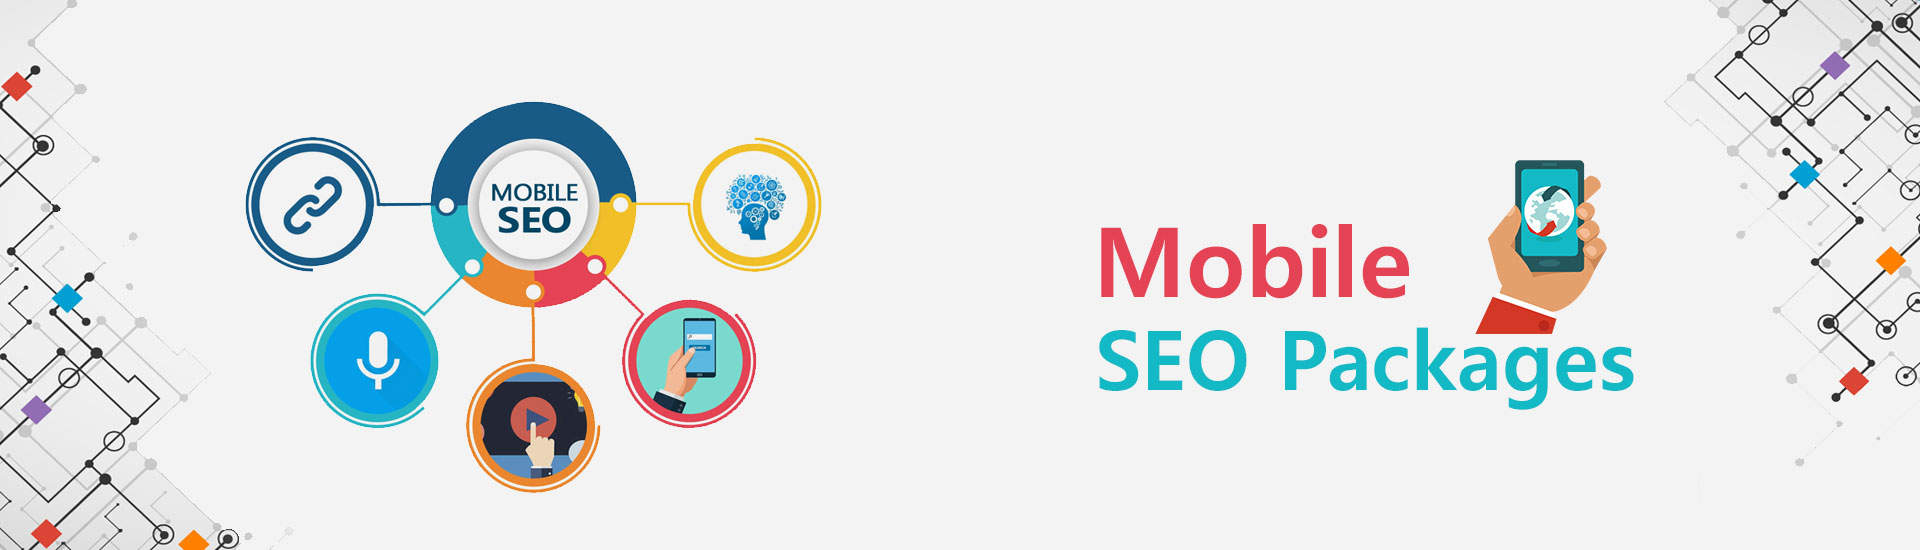 Mobile SEO Packages